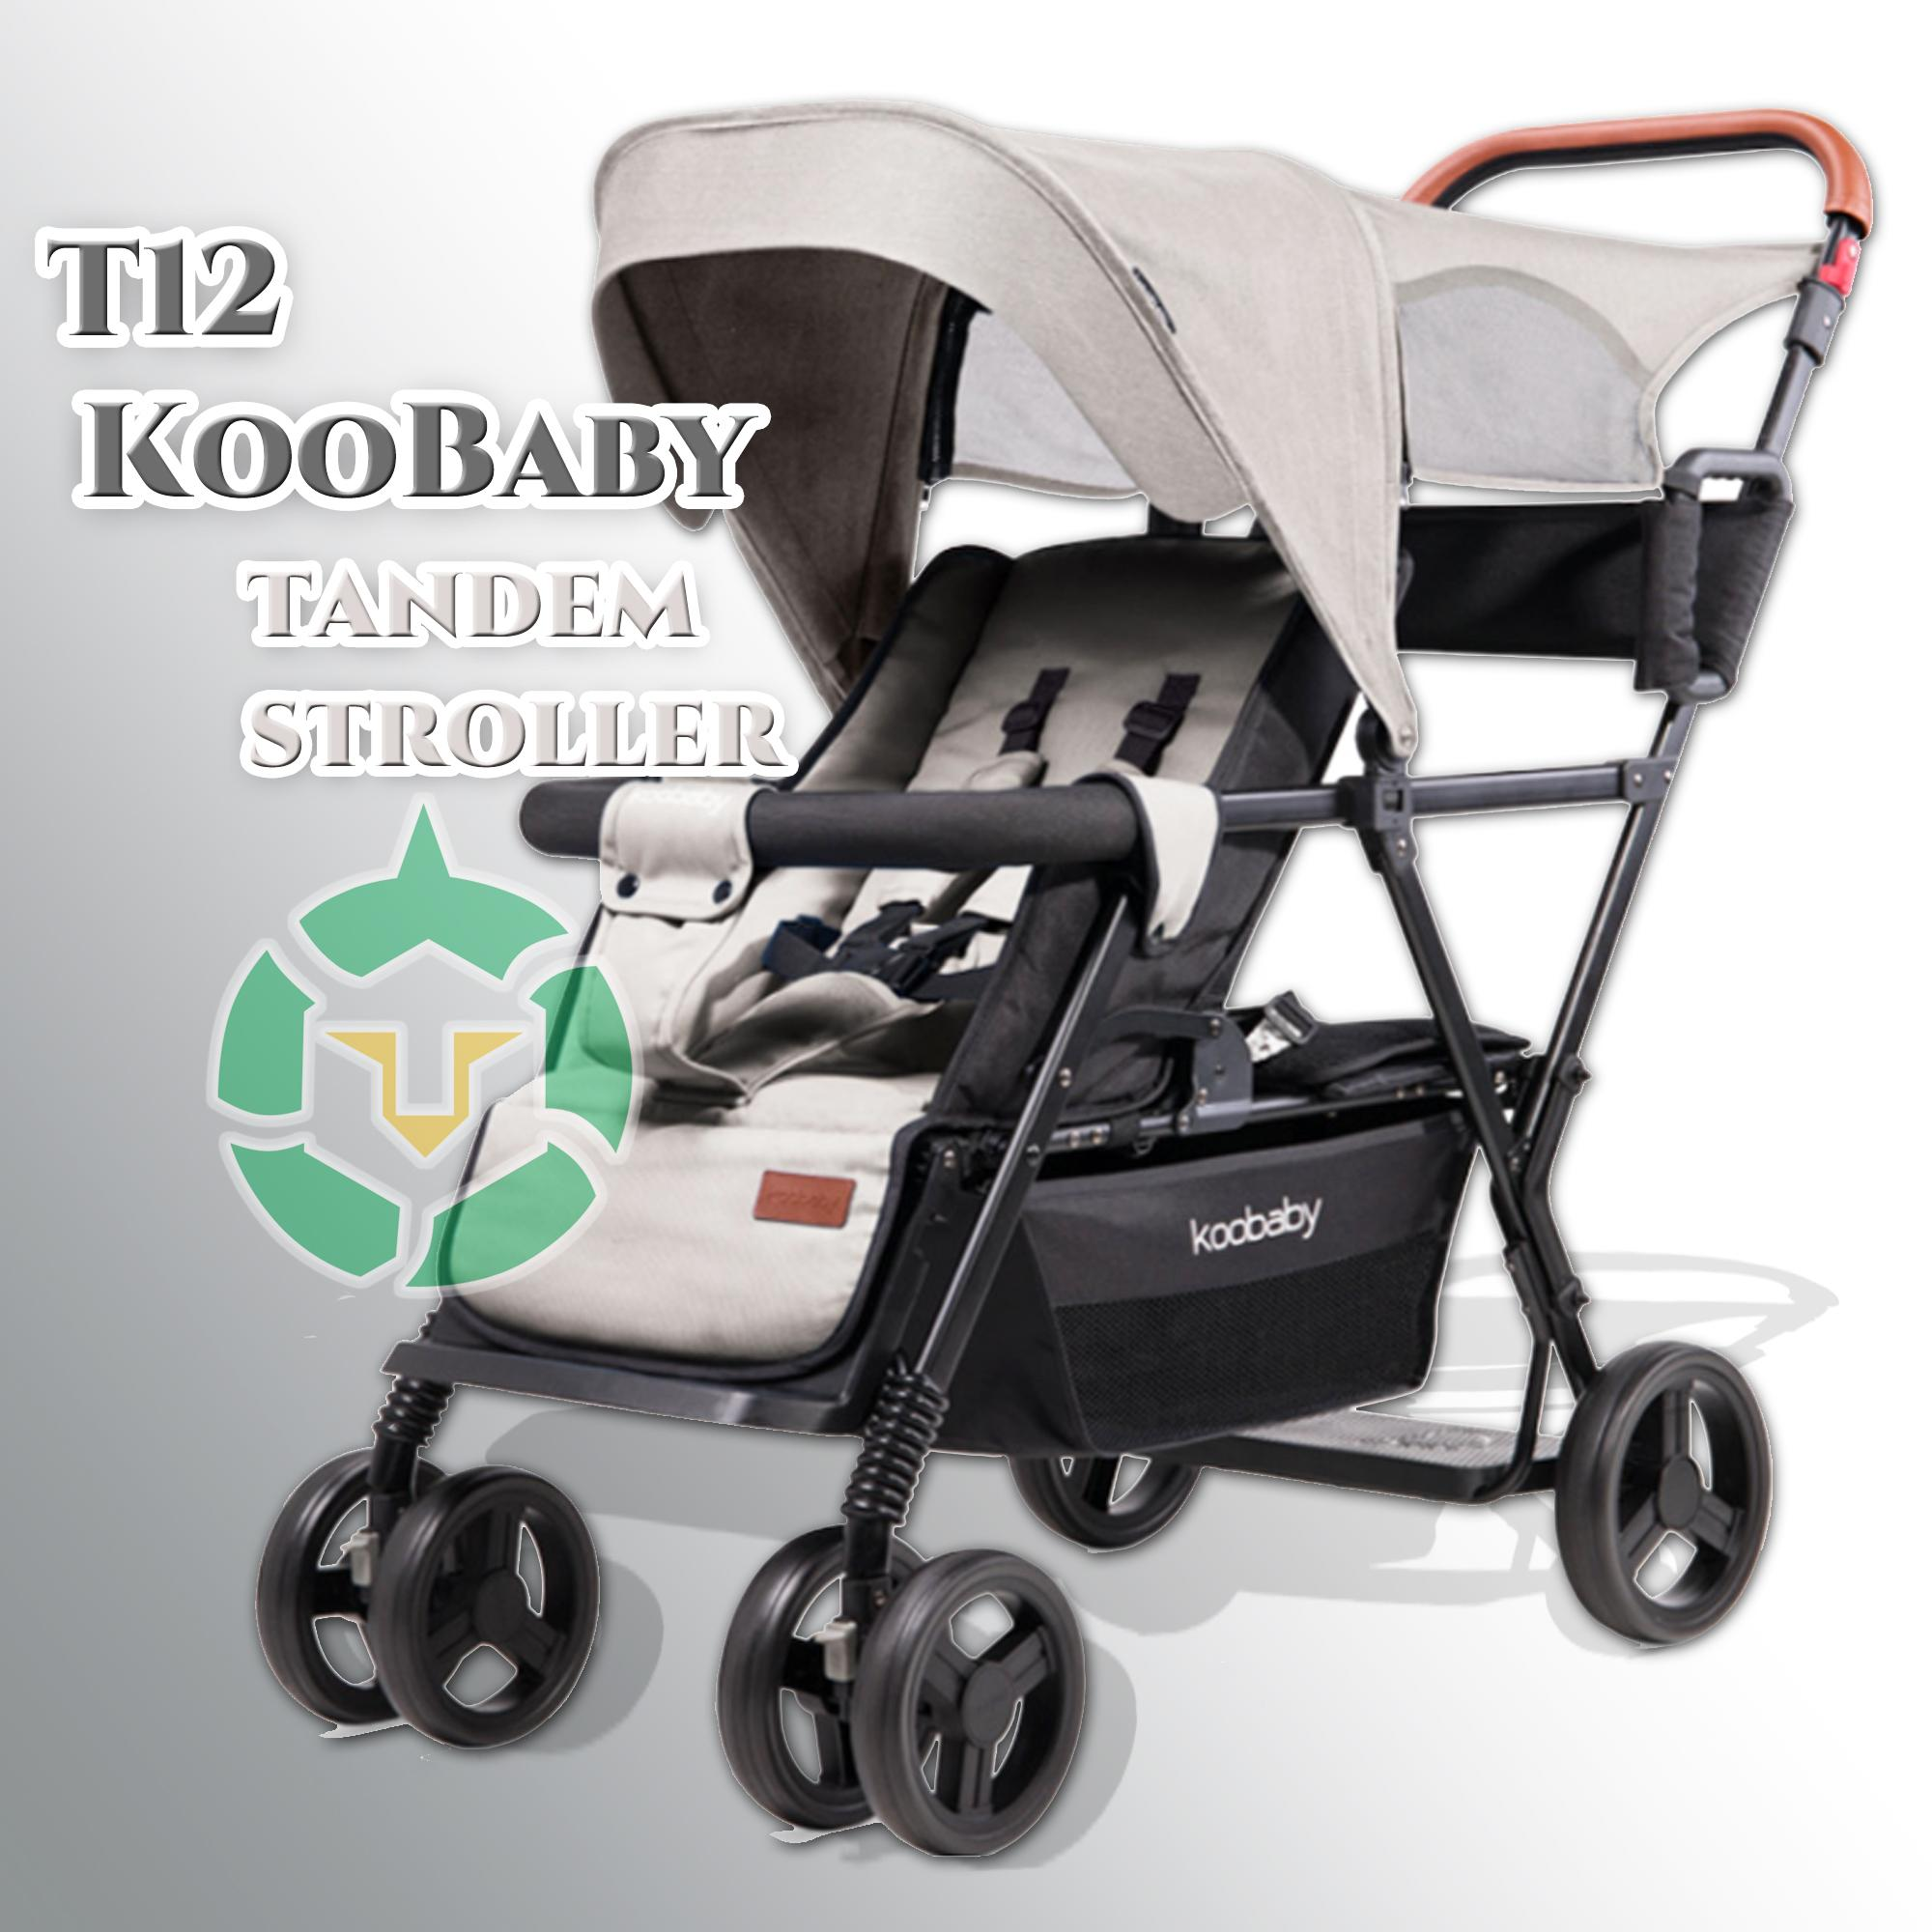 Unicorn New T12 Koobaby Tandem Baby Stroller By Unicorn Selected.